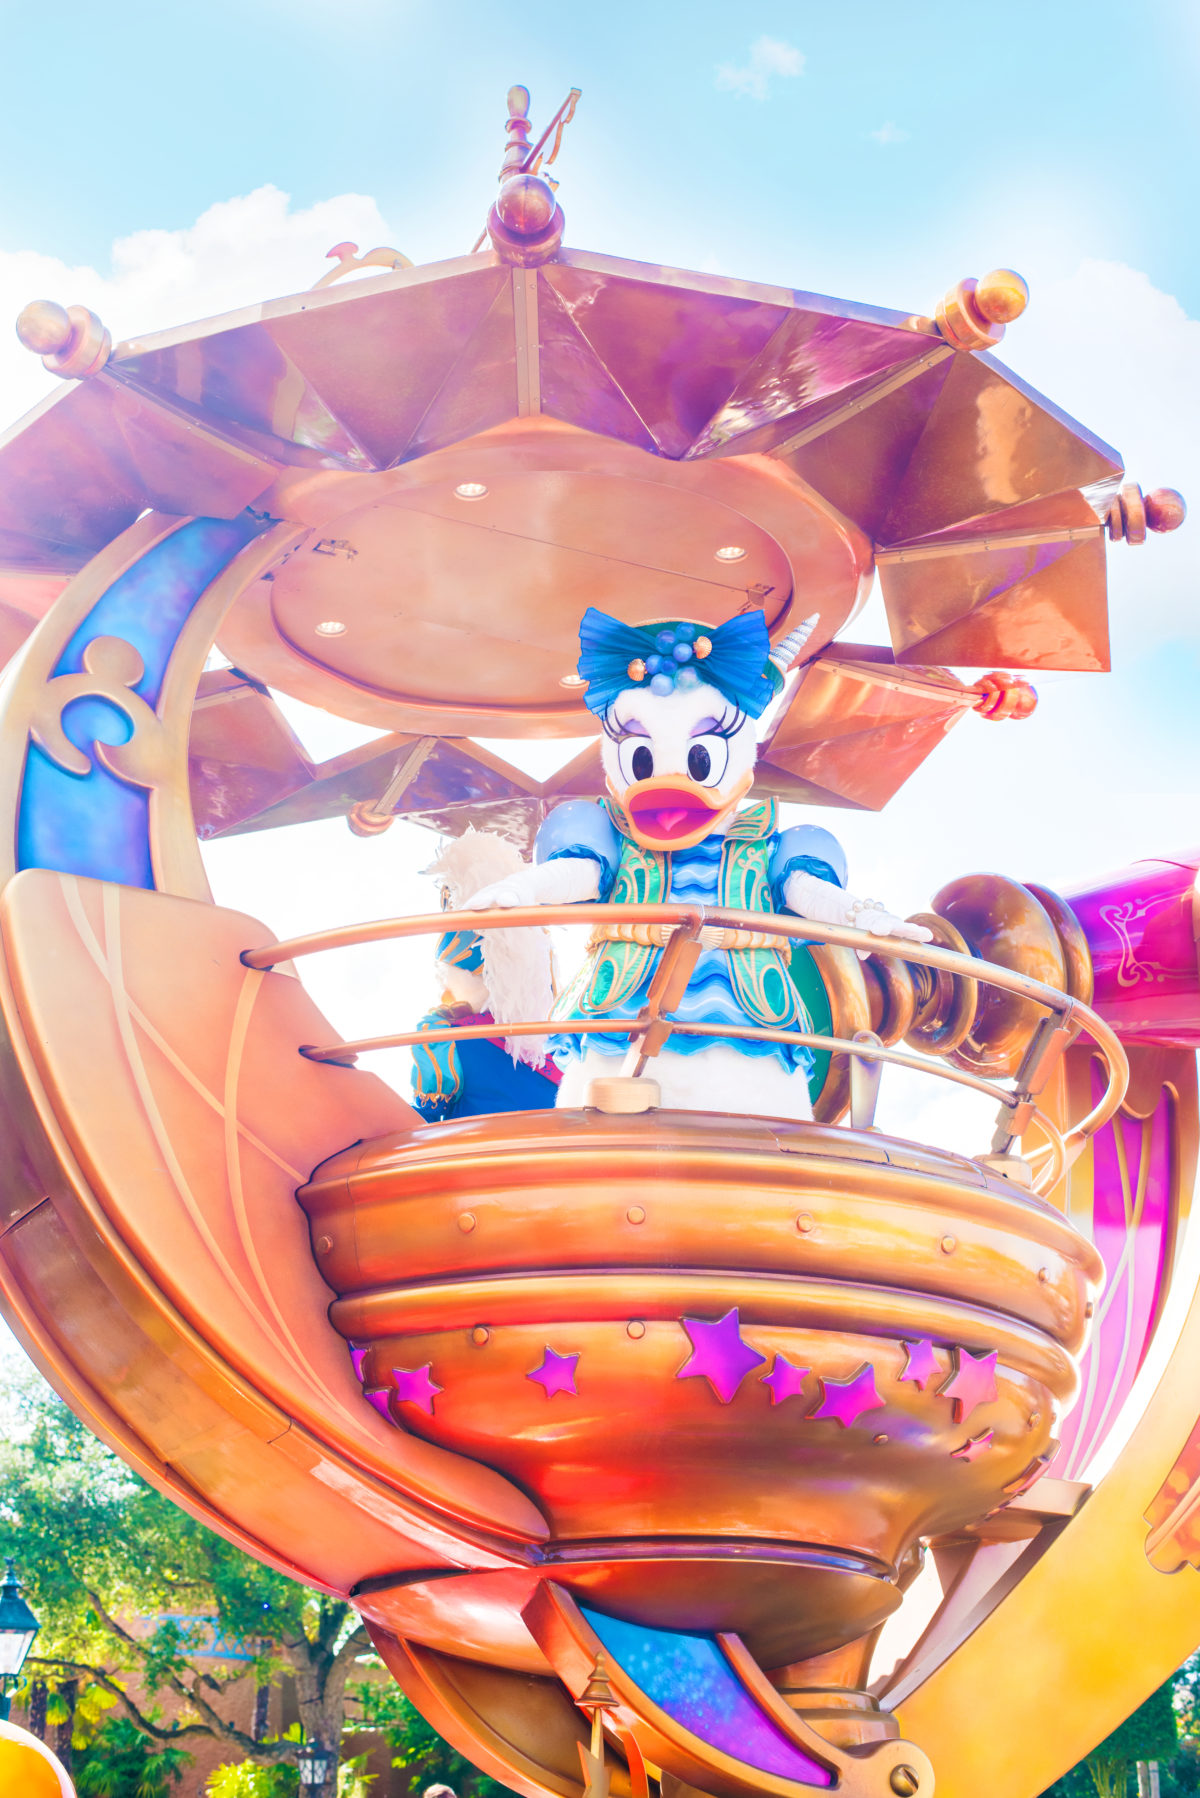 Daisy Duck in her Stars on Parade Costume, Disneyland Paris